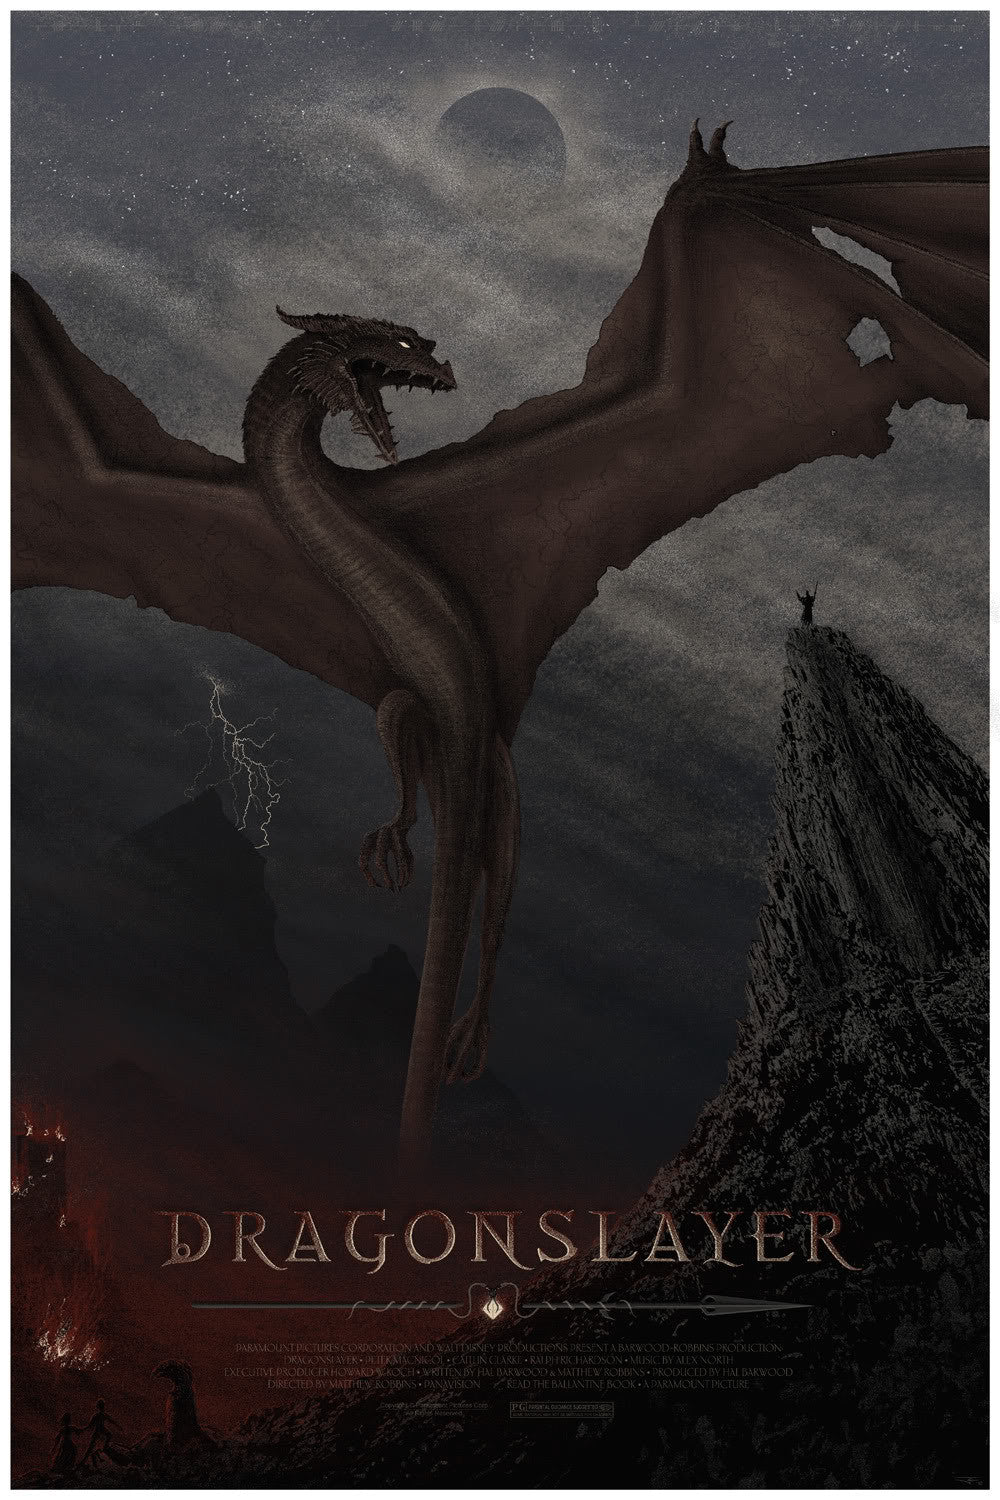 DRAGONSLAYER by JC Richard